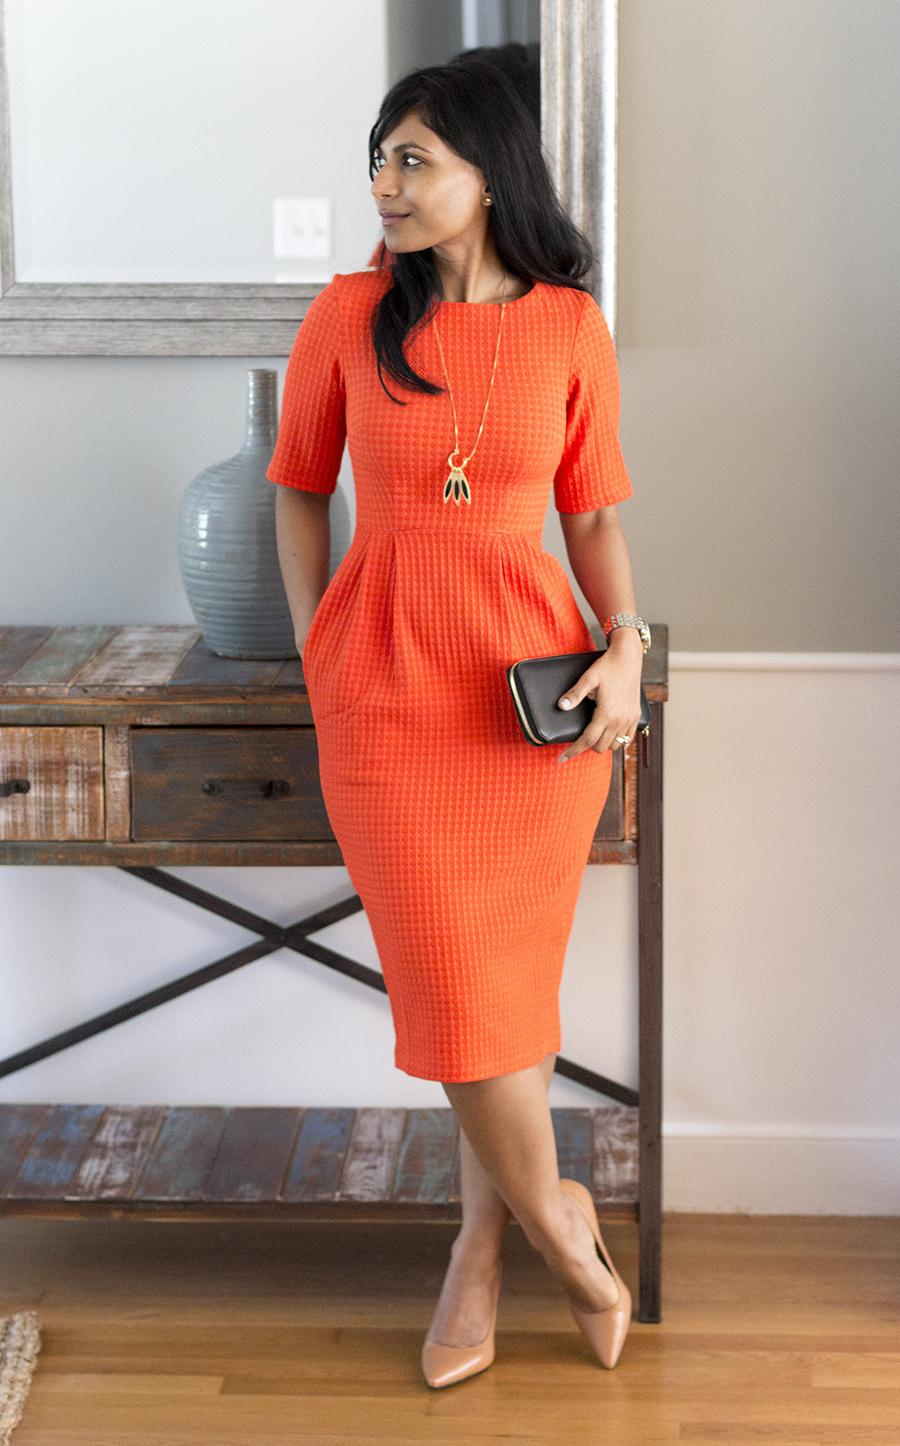 dress with pockets, bright dress, curvy figures, midi dress, nude pumps, affordable style, pointy toe pump, leg lengthening